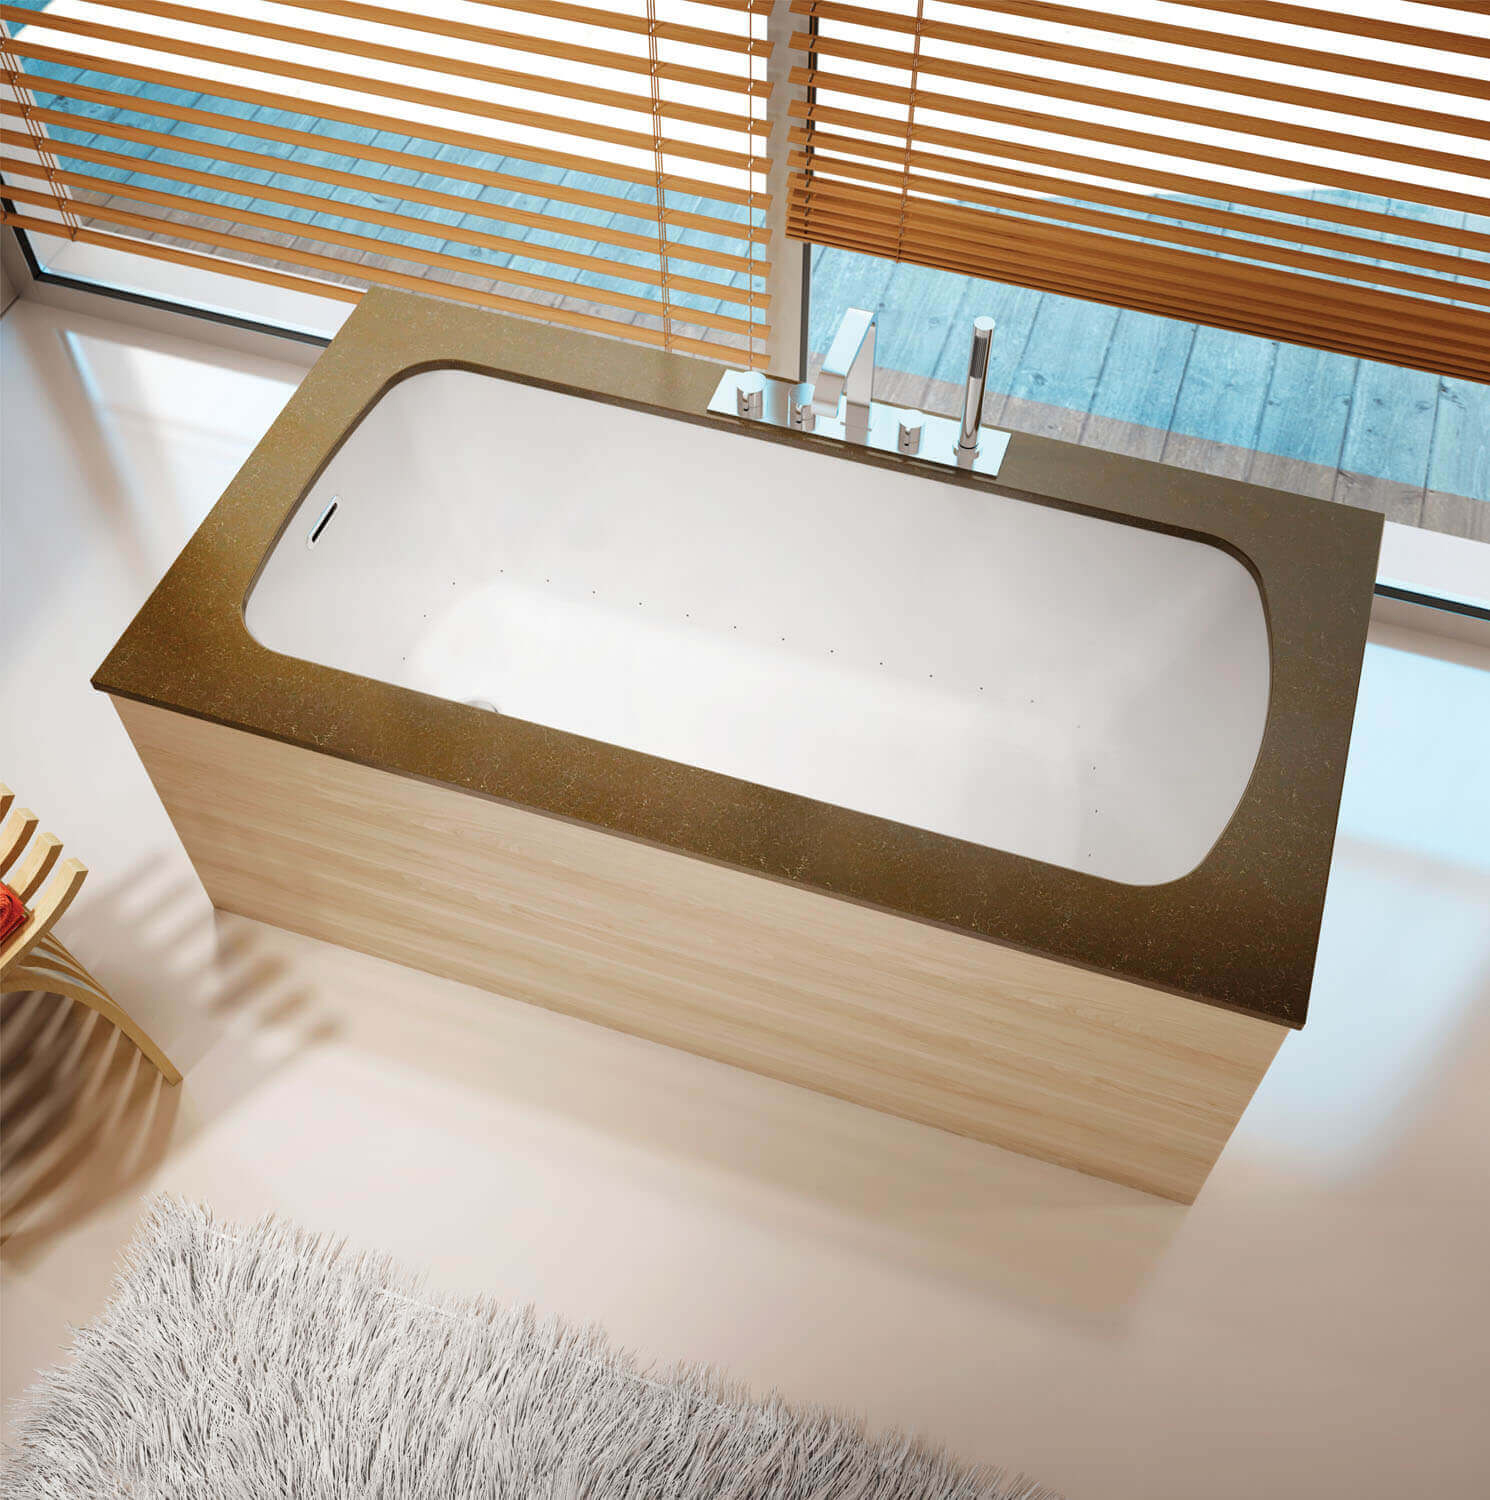 Monarch 6035 air jet bathtub for your modern bathroom